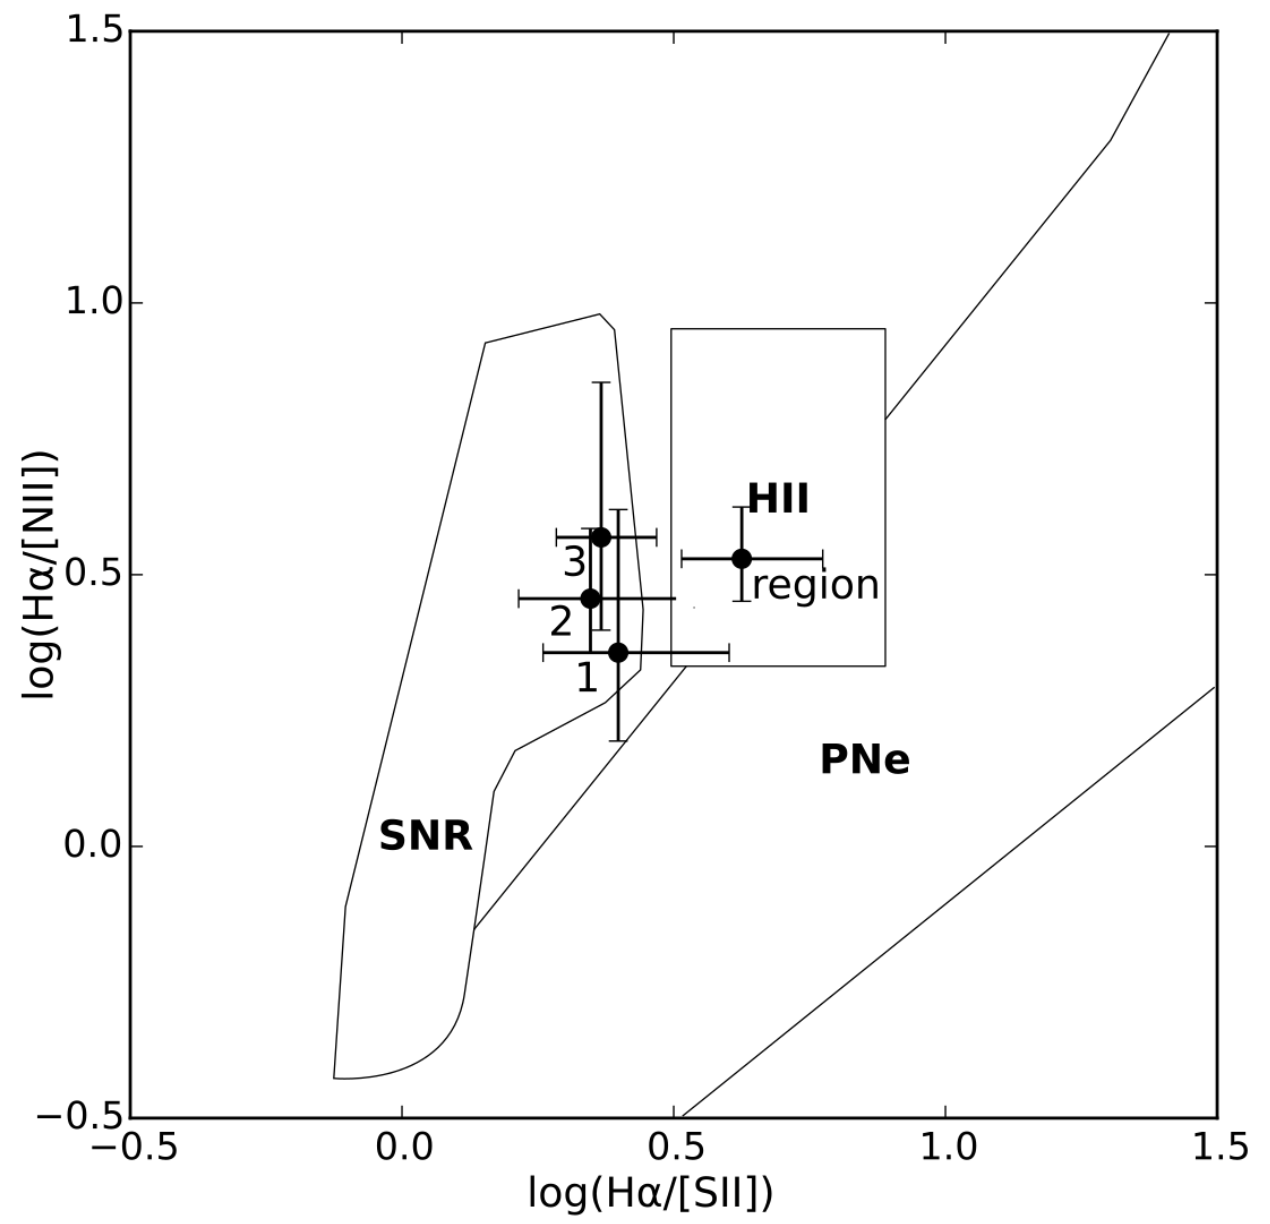 Figure 3. Measurements of emission line ratios of the three bubbles, compared to ratios measured for supernova remnants (SNR), HII regions, and planetary nebulae (PNe). The three bubbles (1, 2, 3) have emission lines consistent with other supernova remnants. The HII region ionized by this star cluster is also plotted.